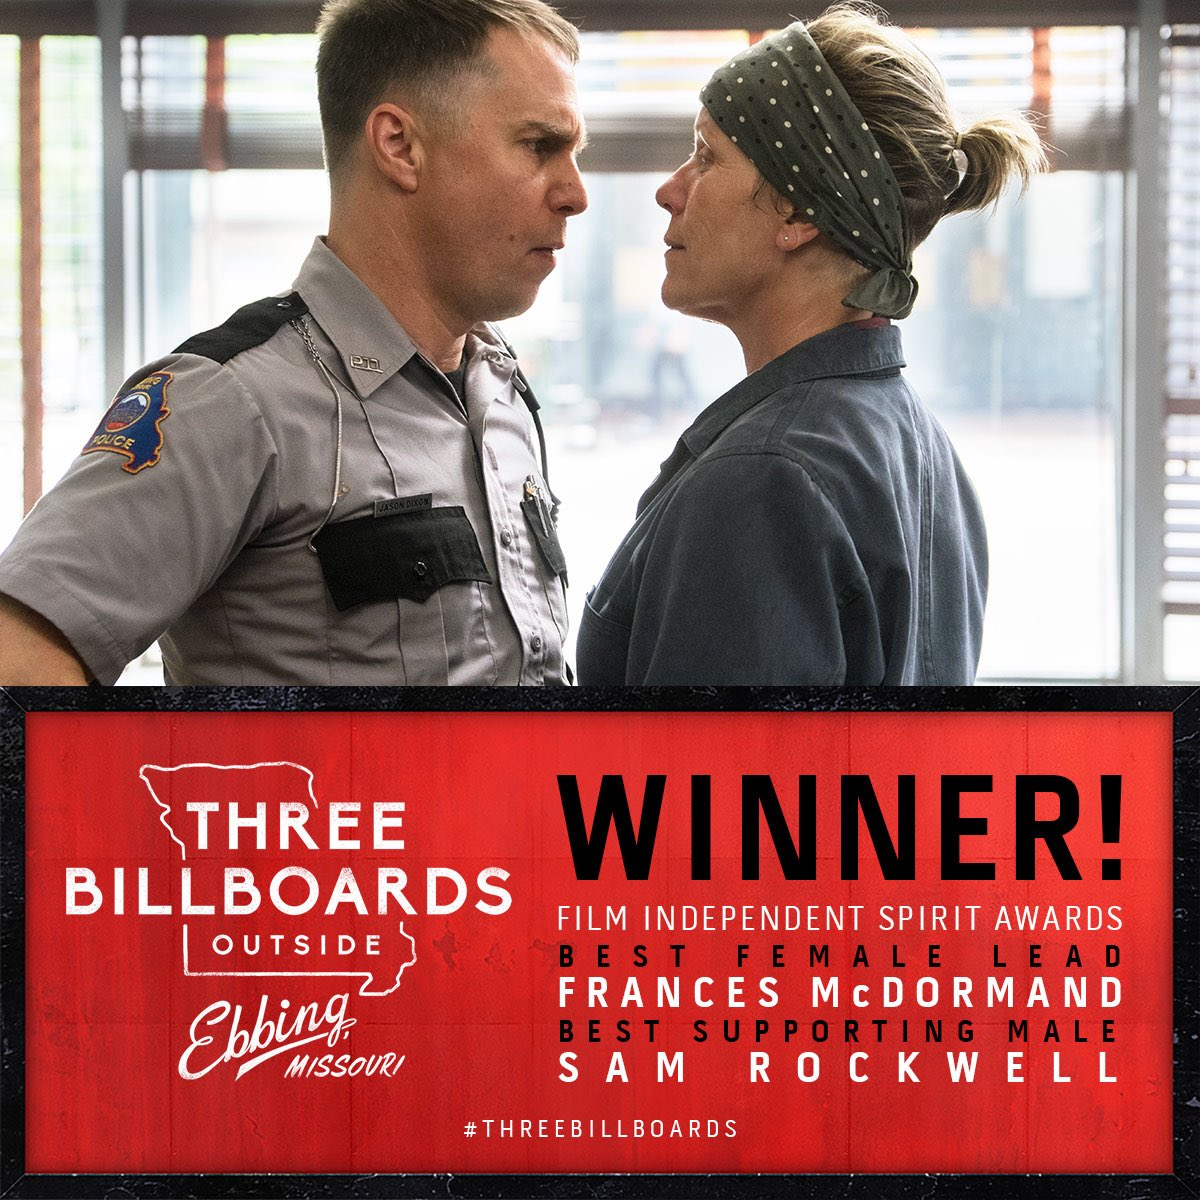 Blueprint pictures blueprintpics twitter congratulations to threebillboards on its 2 wins at the filmindependent spiritawards including best female lead frances mcdormand and best male lead sam malvernweather Image collections